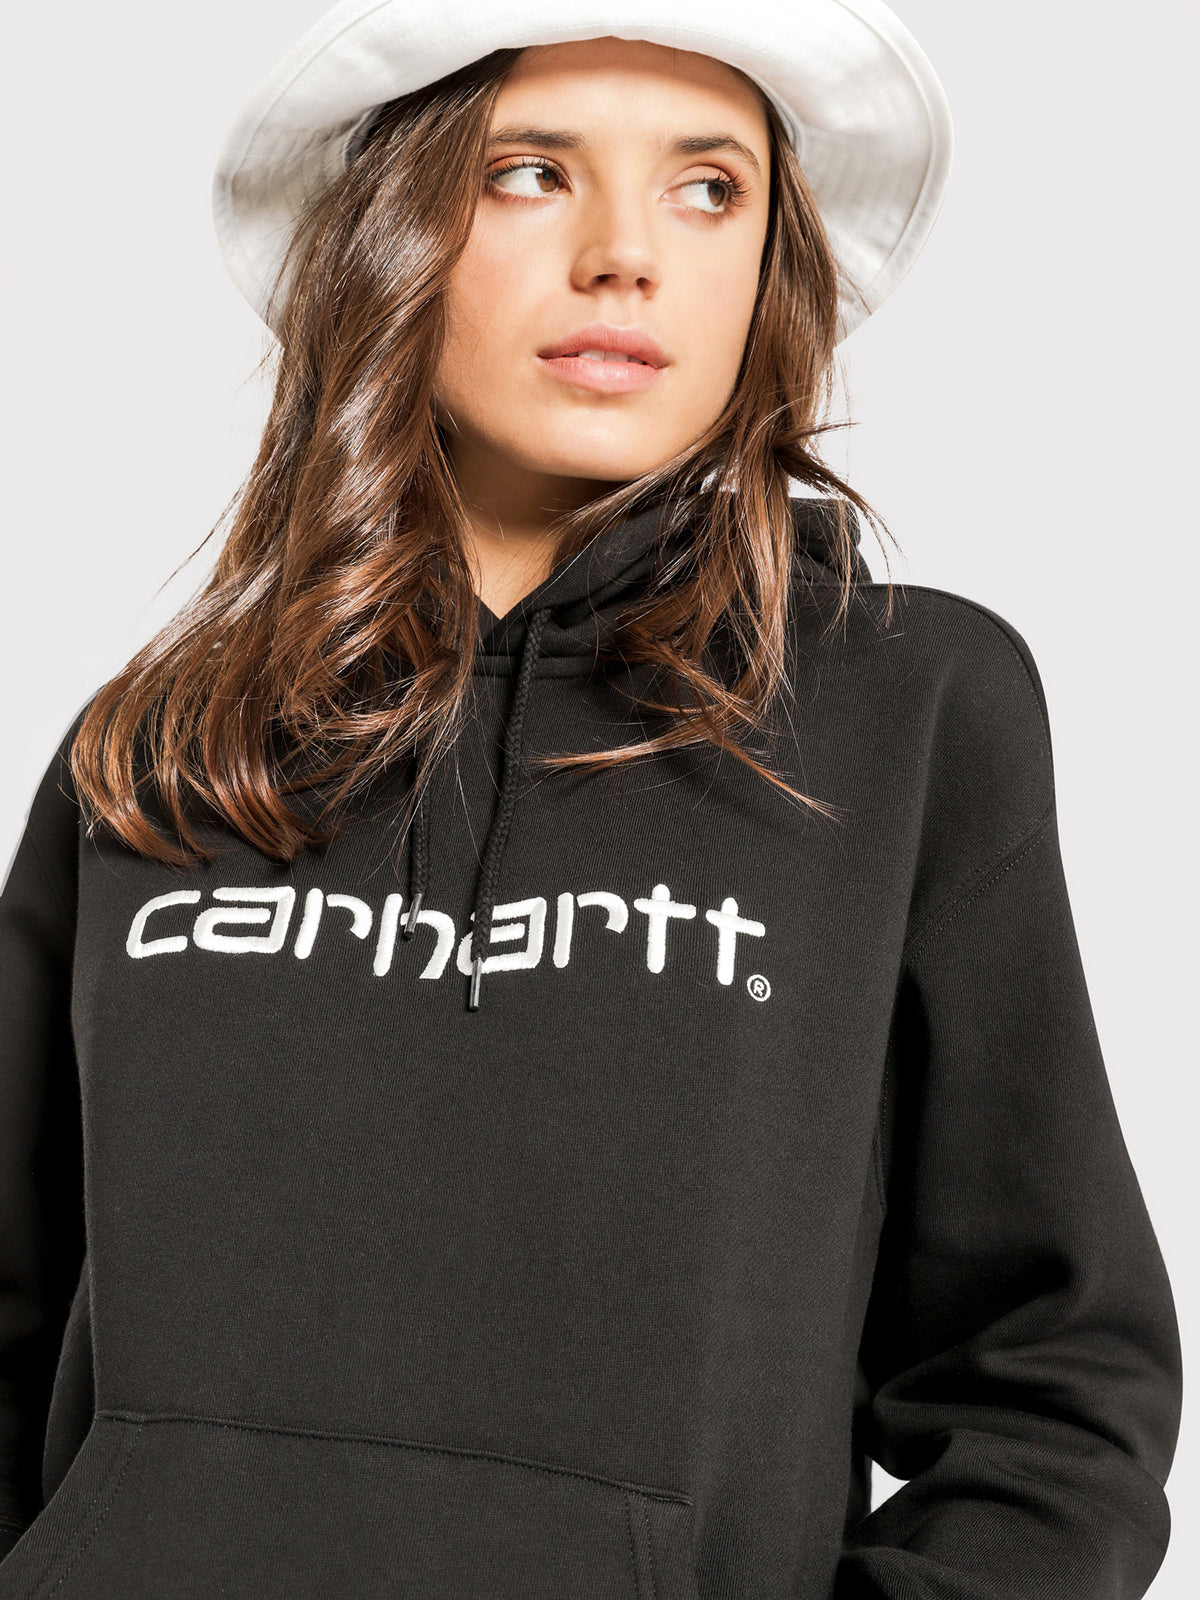 Hooded Carhartt Sweatshirt in Black & White